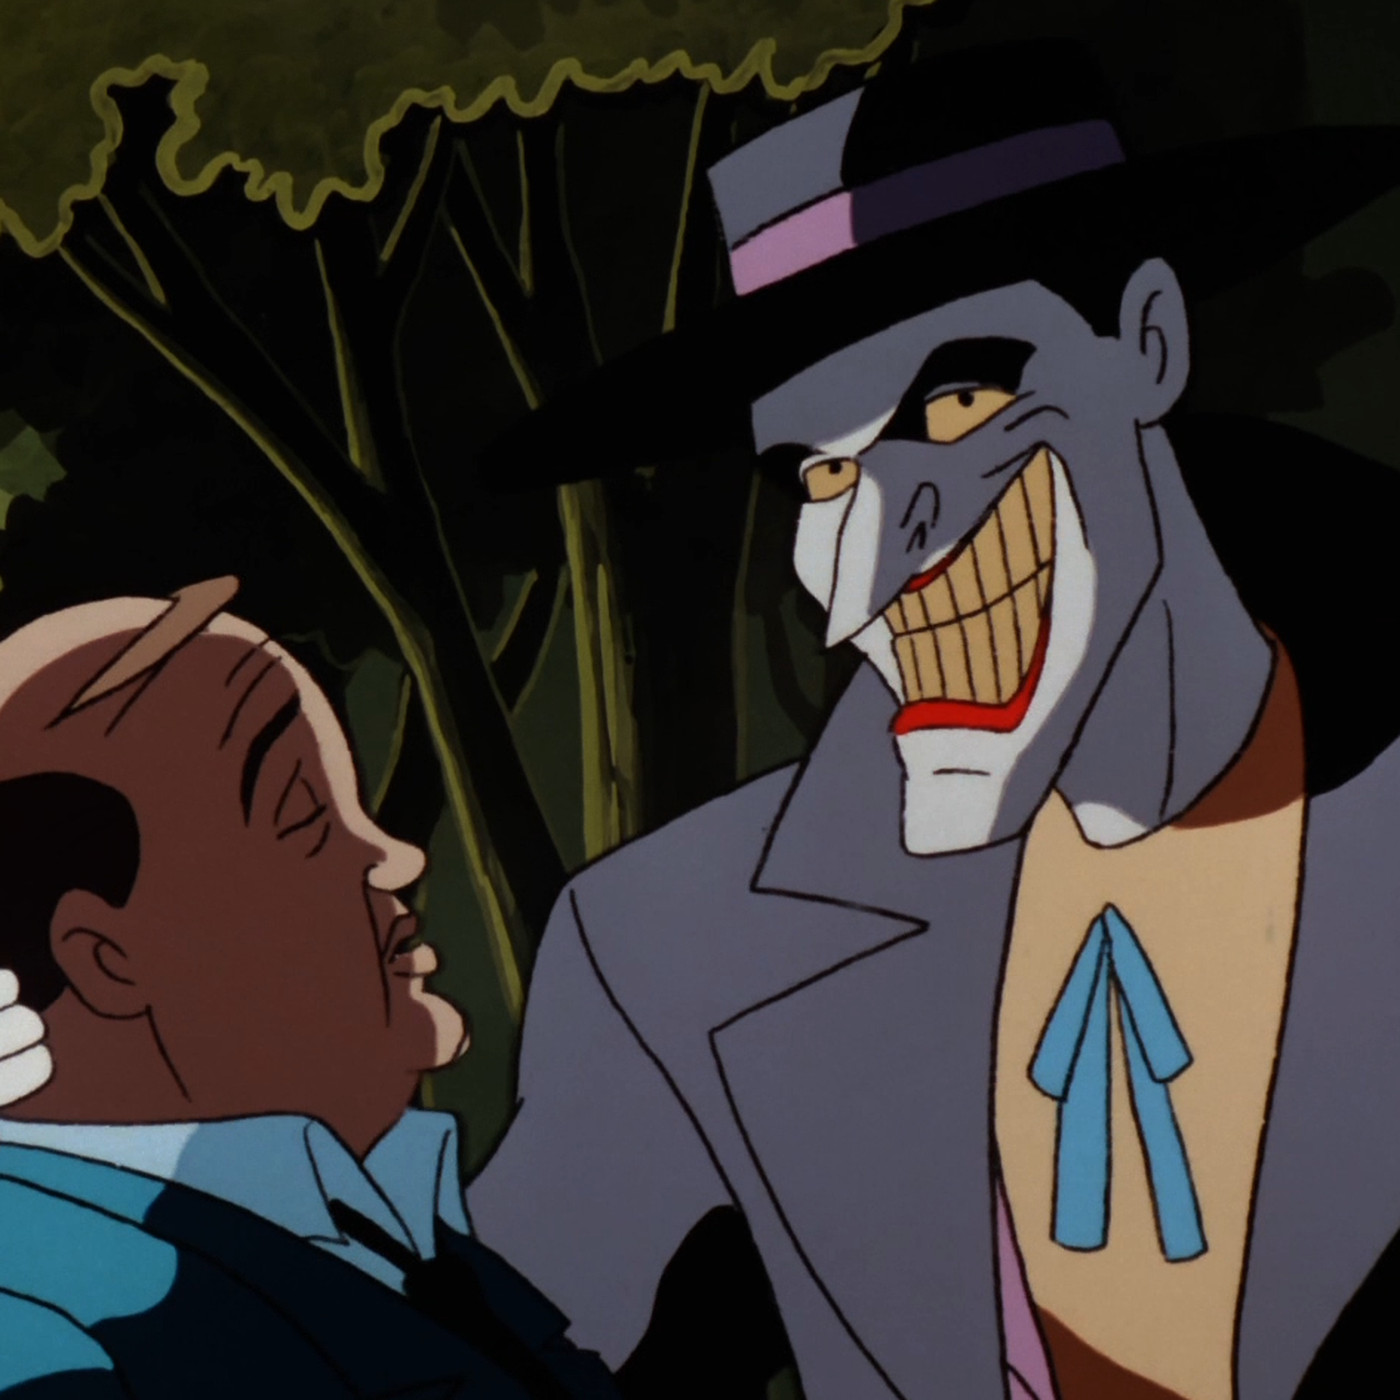 Here S The Best Joker Episode Of Batman The Animated Series The Verge